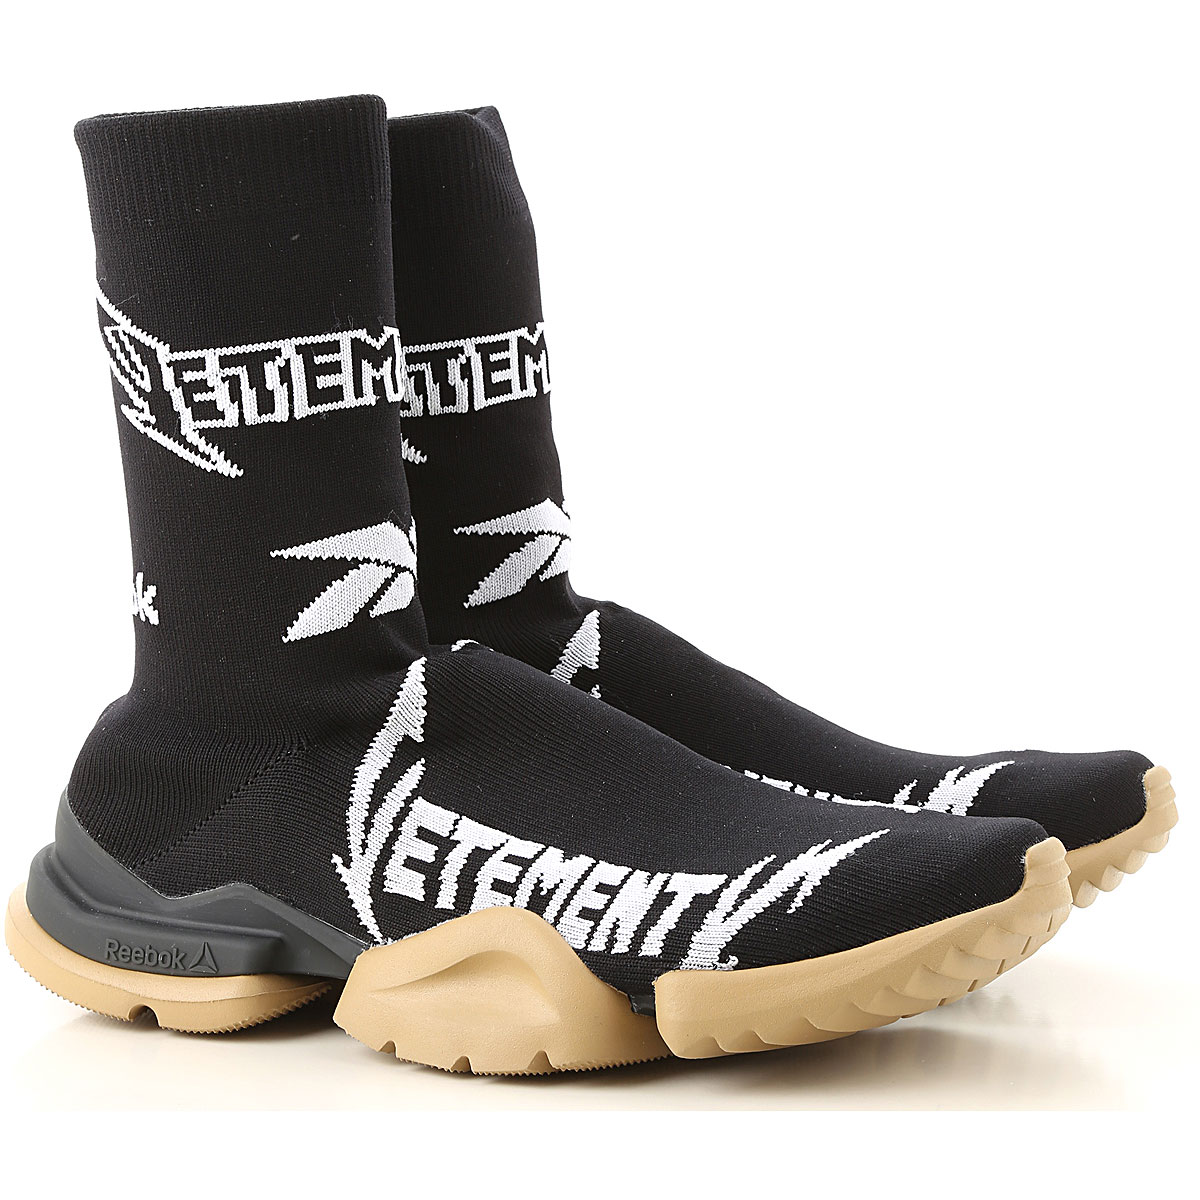 Vetements Sneakers for Men On Sale in Outlet, Black, Textile, 2019, 10.25 11 9.5